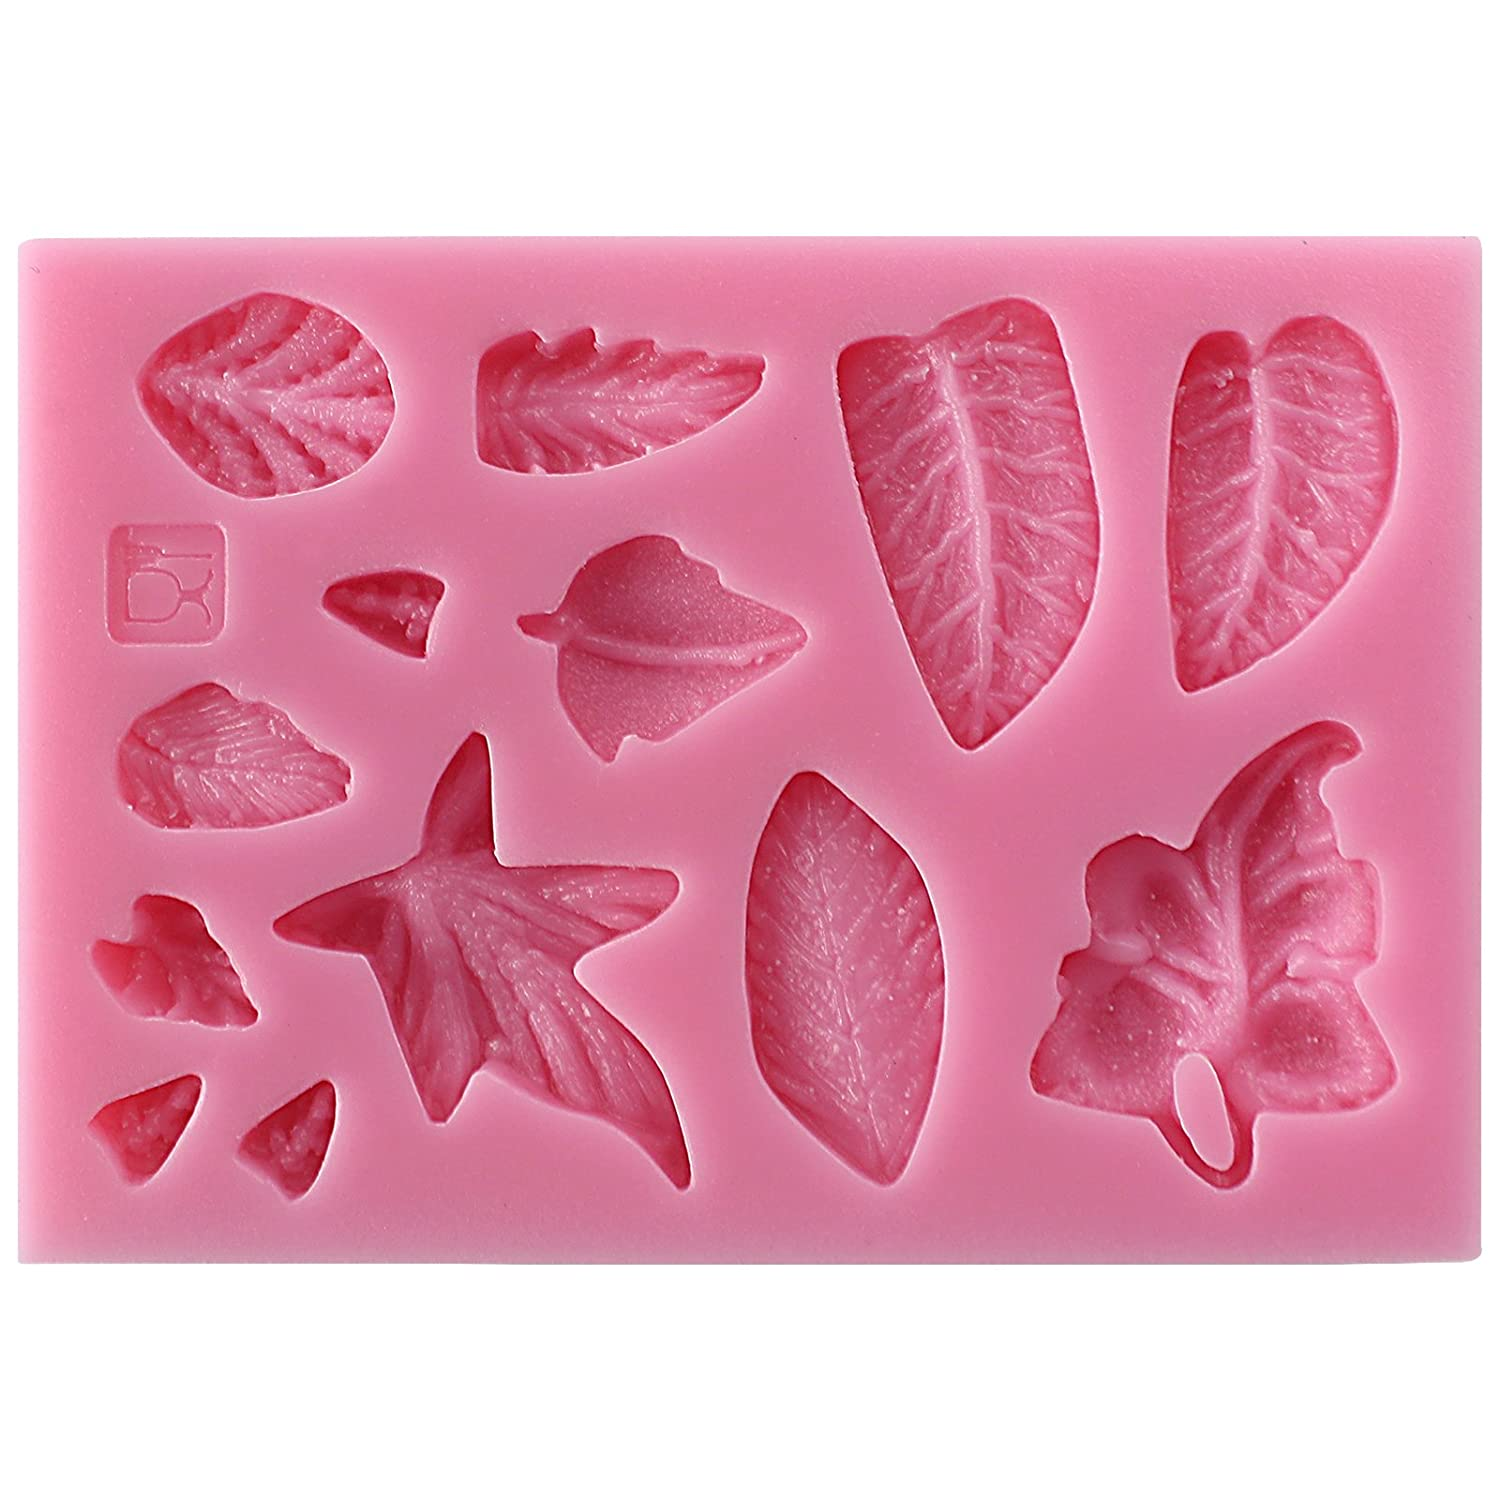 Crafting Projects Wax Polymer Clay Resin Butter Soap Funshowcase Fondant Large and Small Leaves Silicone Mold for Sugarcraft Fondant Cake Decoration